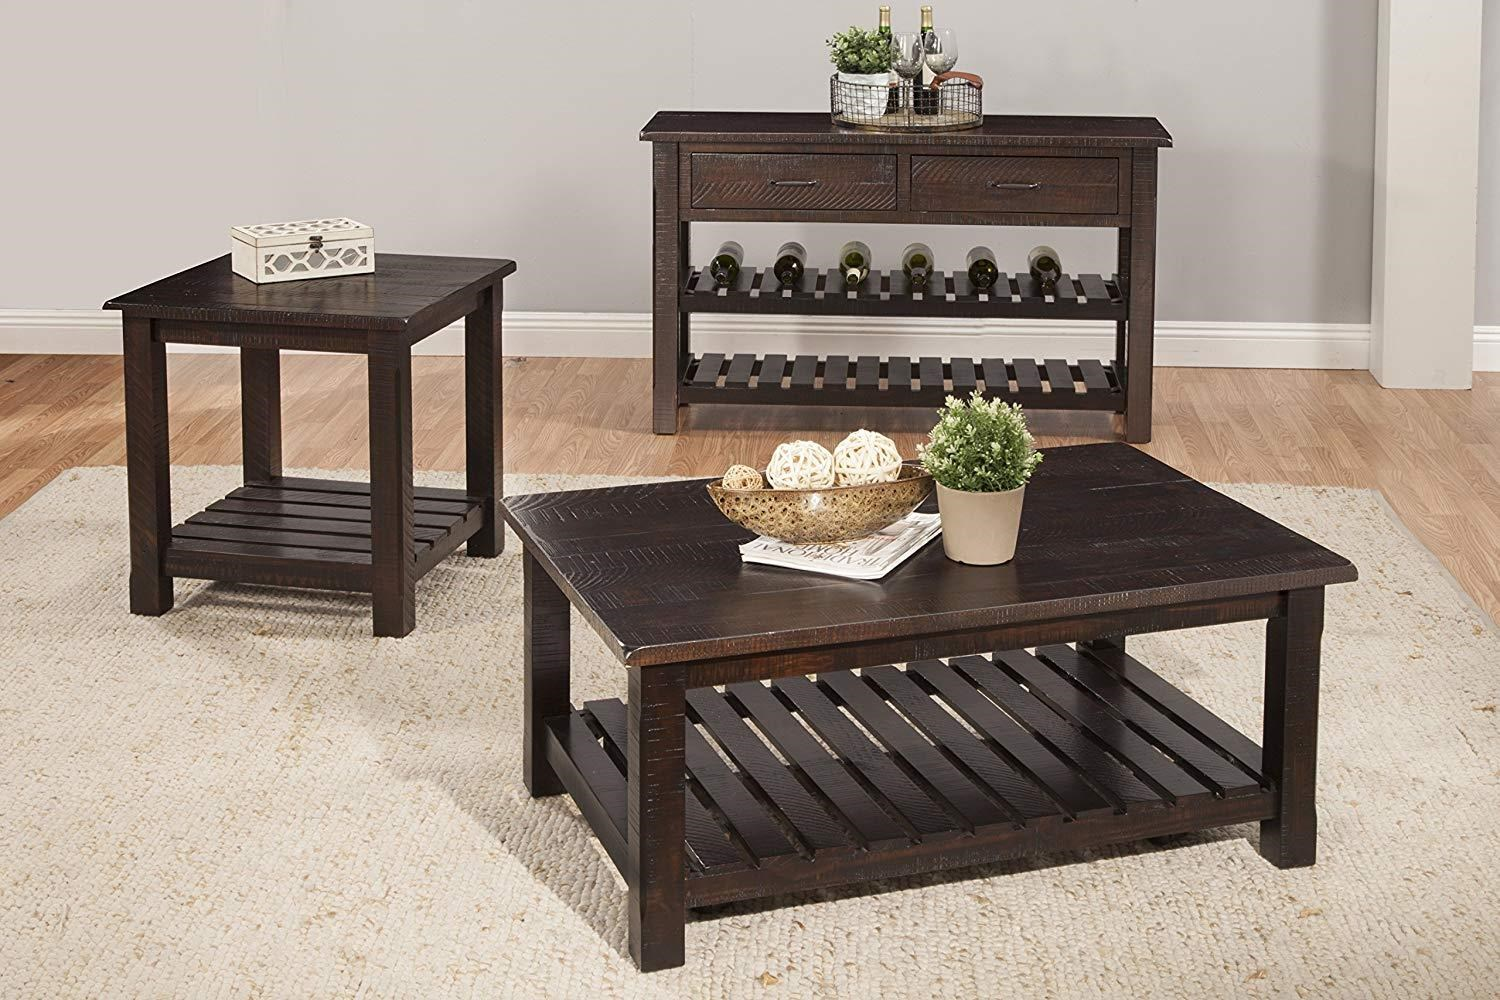 Rustic Espresso Coffee Table and 2 End Table